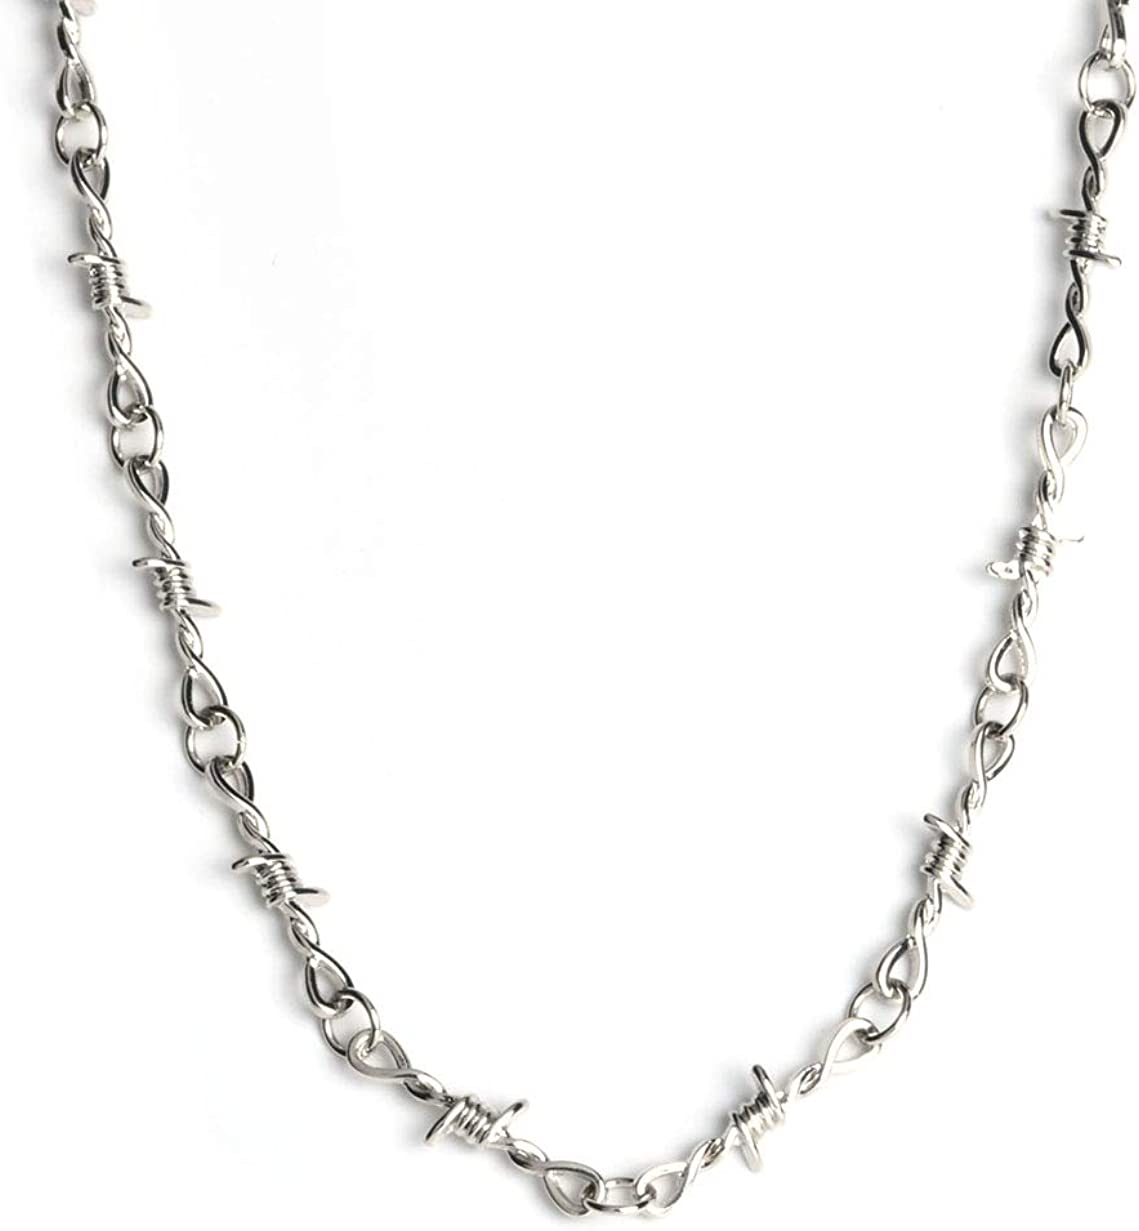 BYONDEVER Barbed Wire Necklace Gothic Thorns Choker Bracelet Punk Hip Hop Rock Stainless Steel Jewelry Set Gift for Women Girls Men